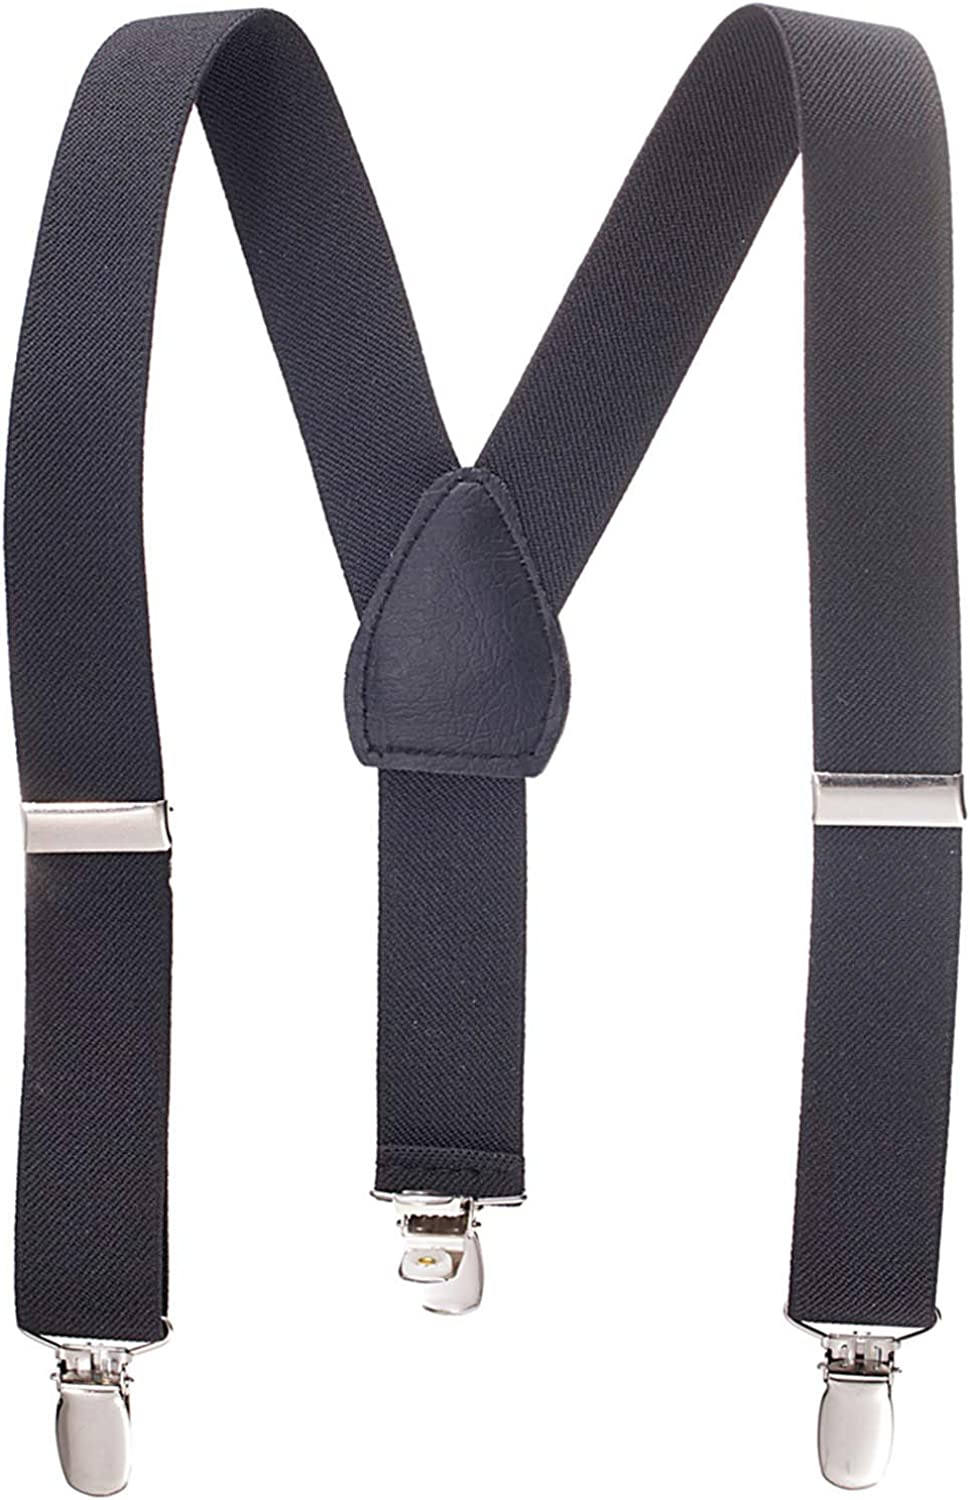 7 Months - 3 Years Sturdy Metal Clips Genuine Leather Suspender Black, 24 inches Children Boys Kids Adults Suspenders